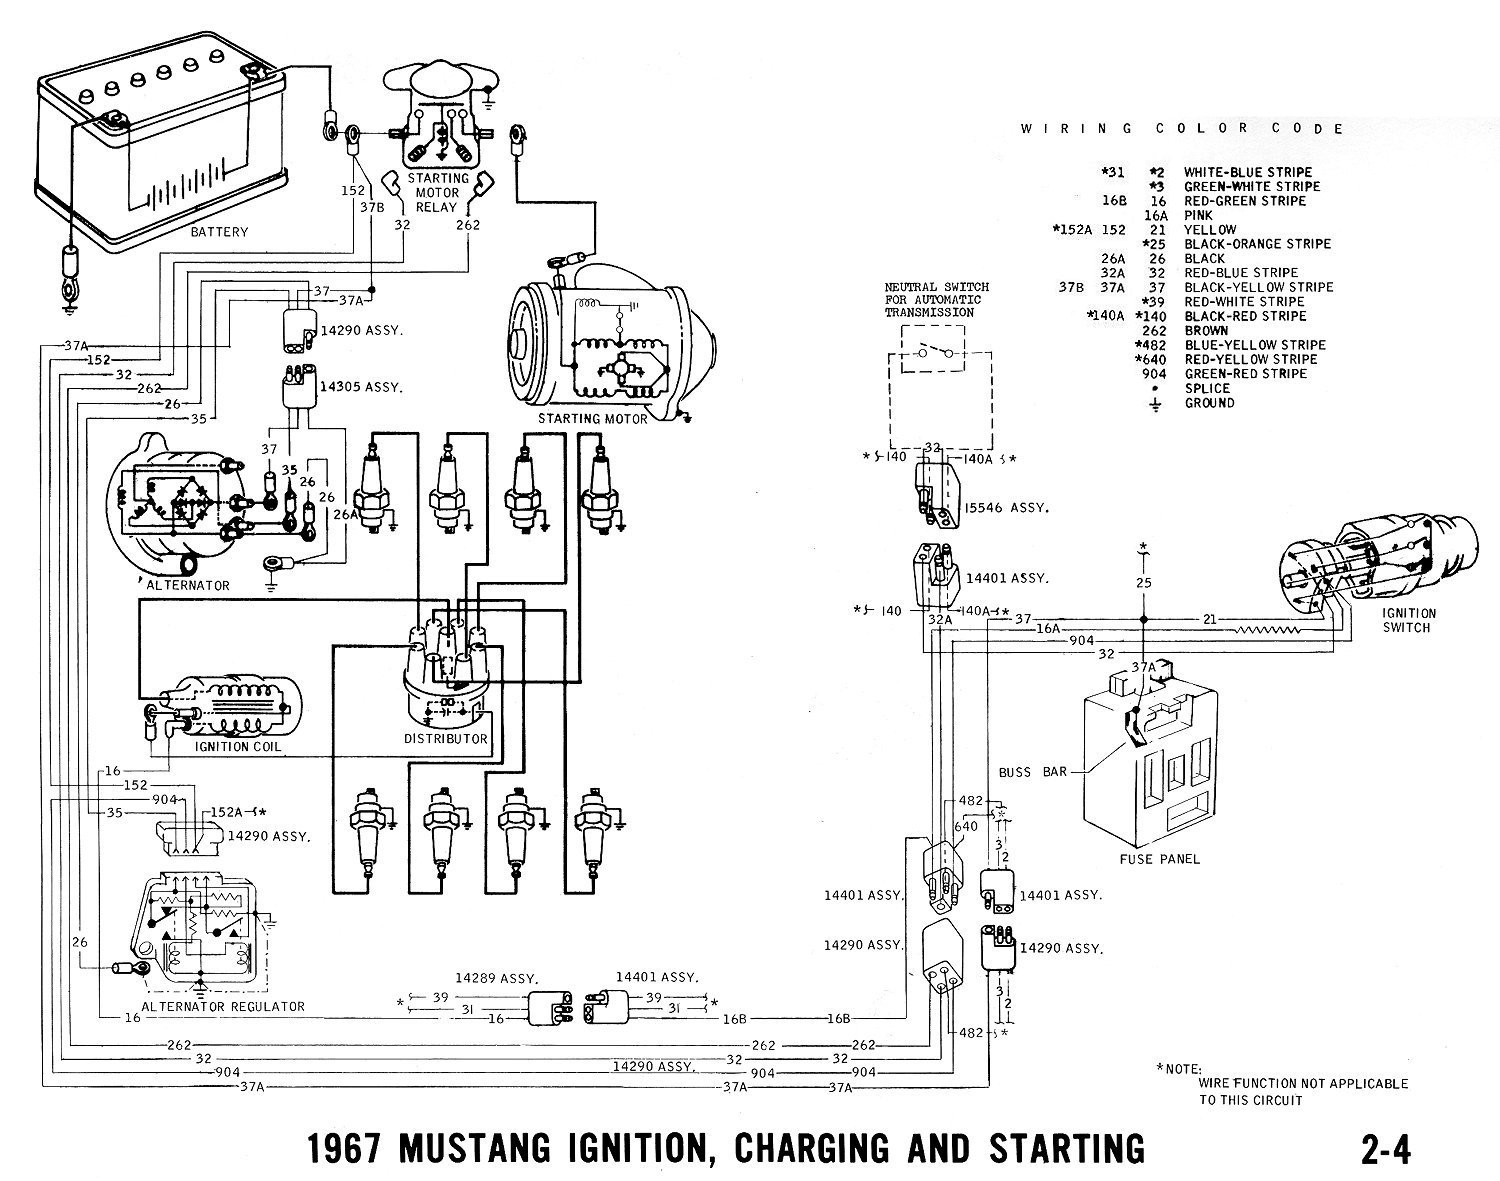 1967 ford mustang alternator 7078 connection problem ... 1994 cobra wiring diagram 1965 cobra wiring diagram